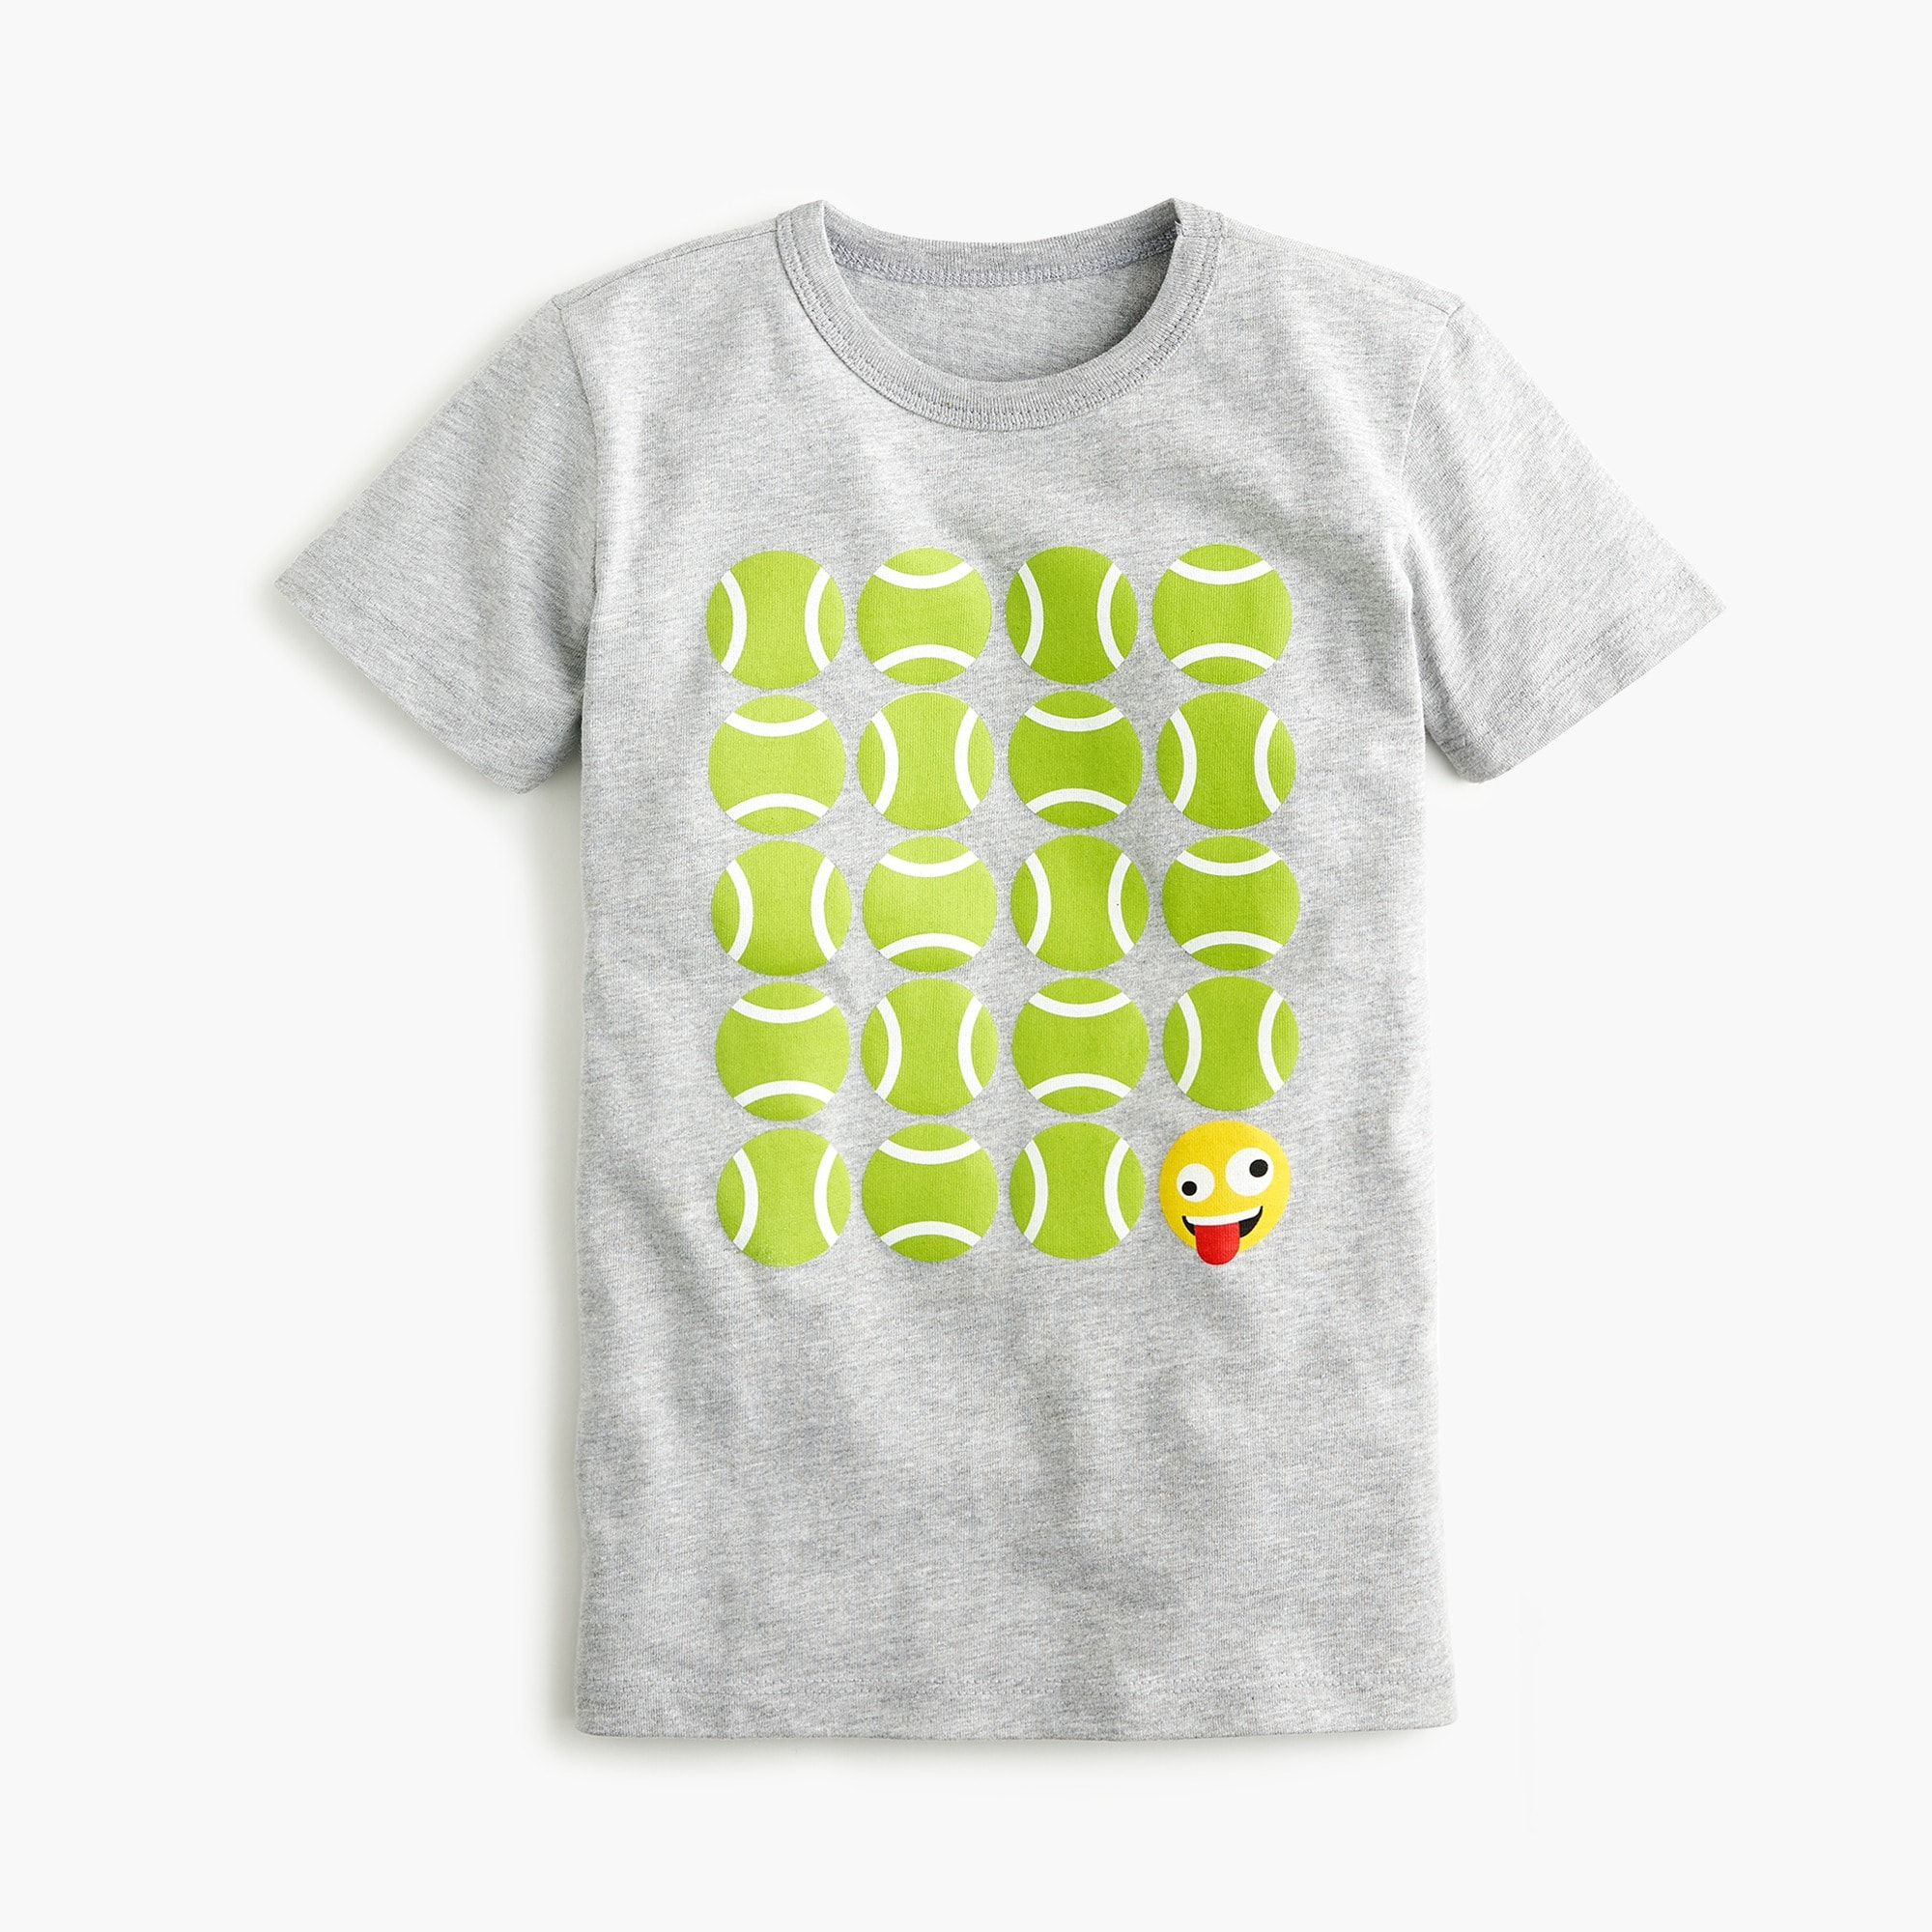 Boys' tennis emoji T-shirt boy new arrivals c